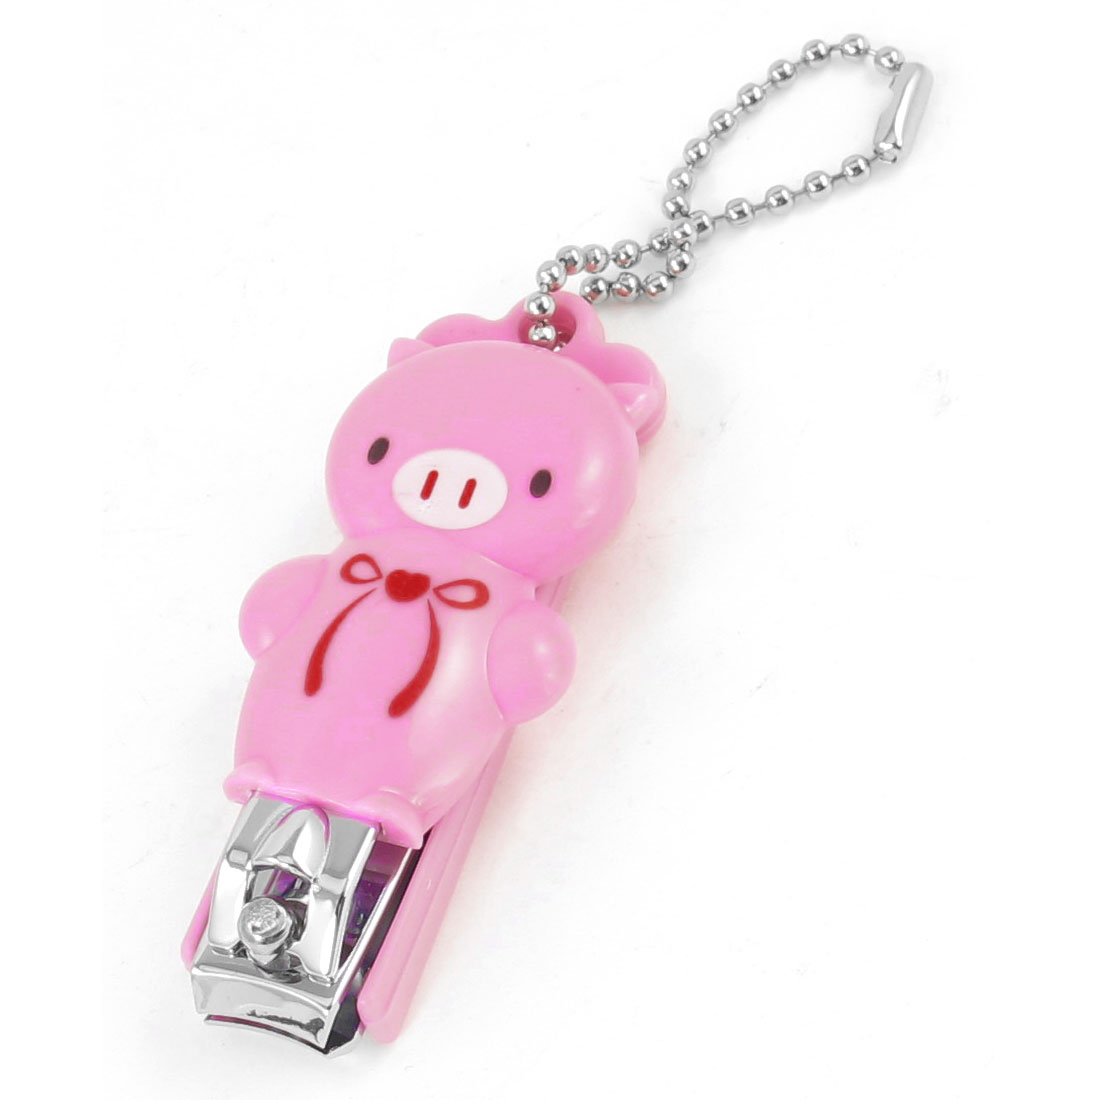 10mm Width Cutter Key Ring Pink Plastic Bowknot Decor Pig Shape Nail Clipper Tool